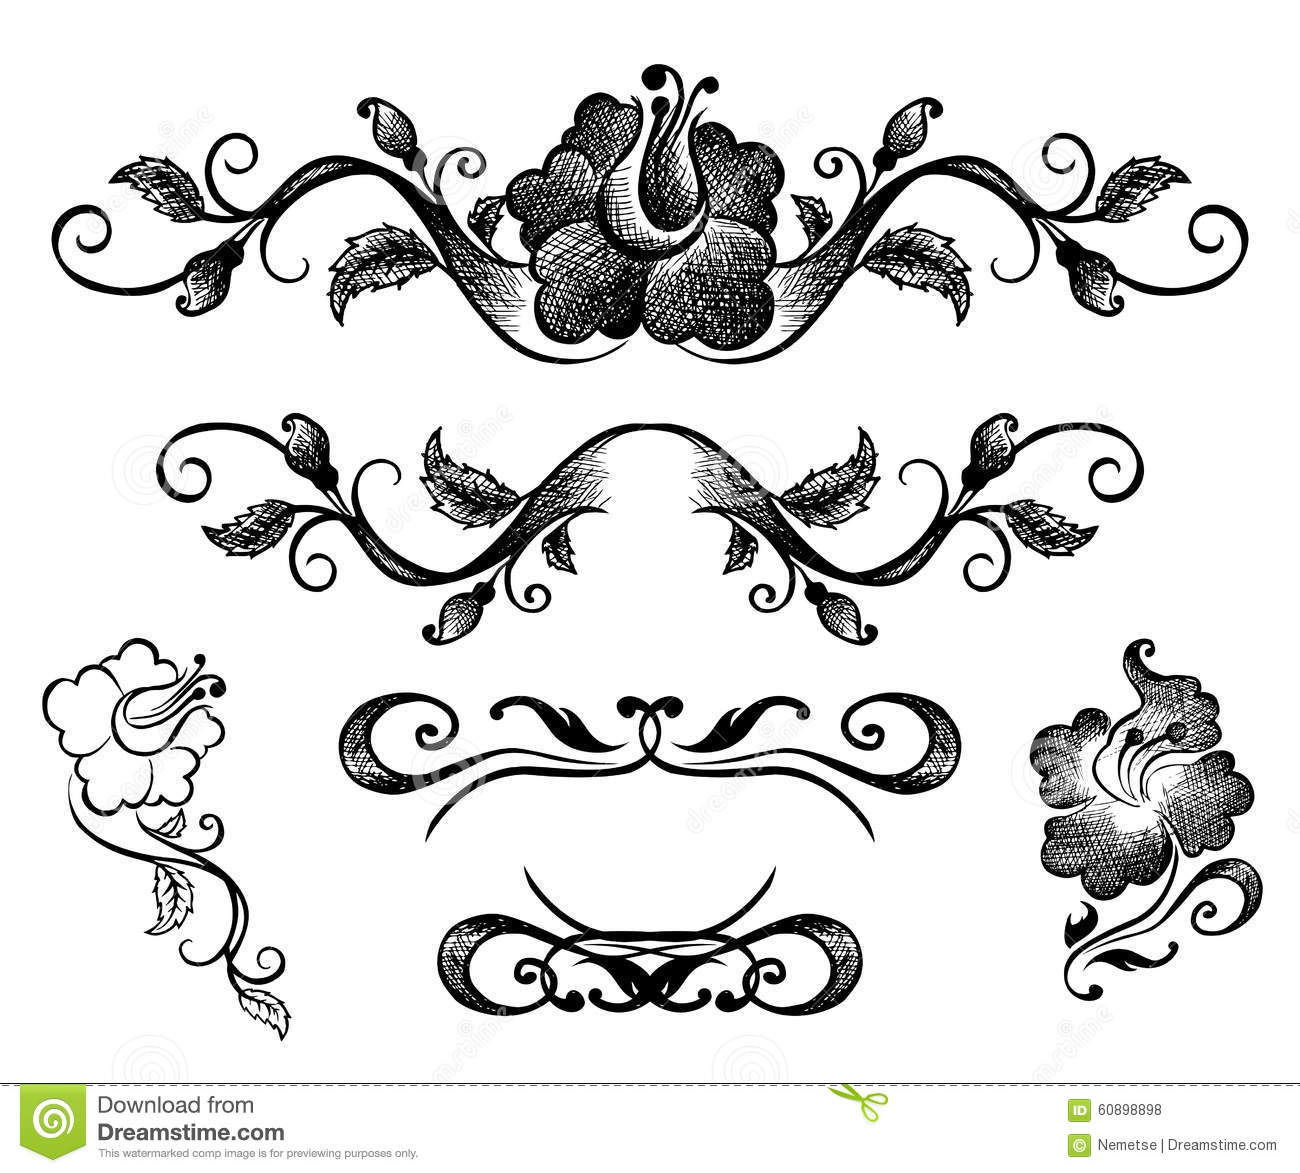 Doodle Border And Floral Patterns Stock Vector ...